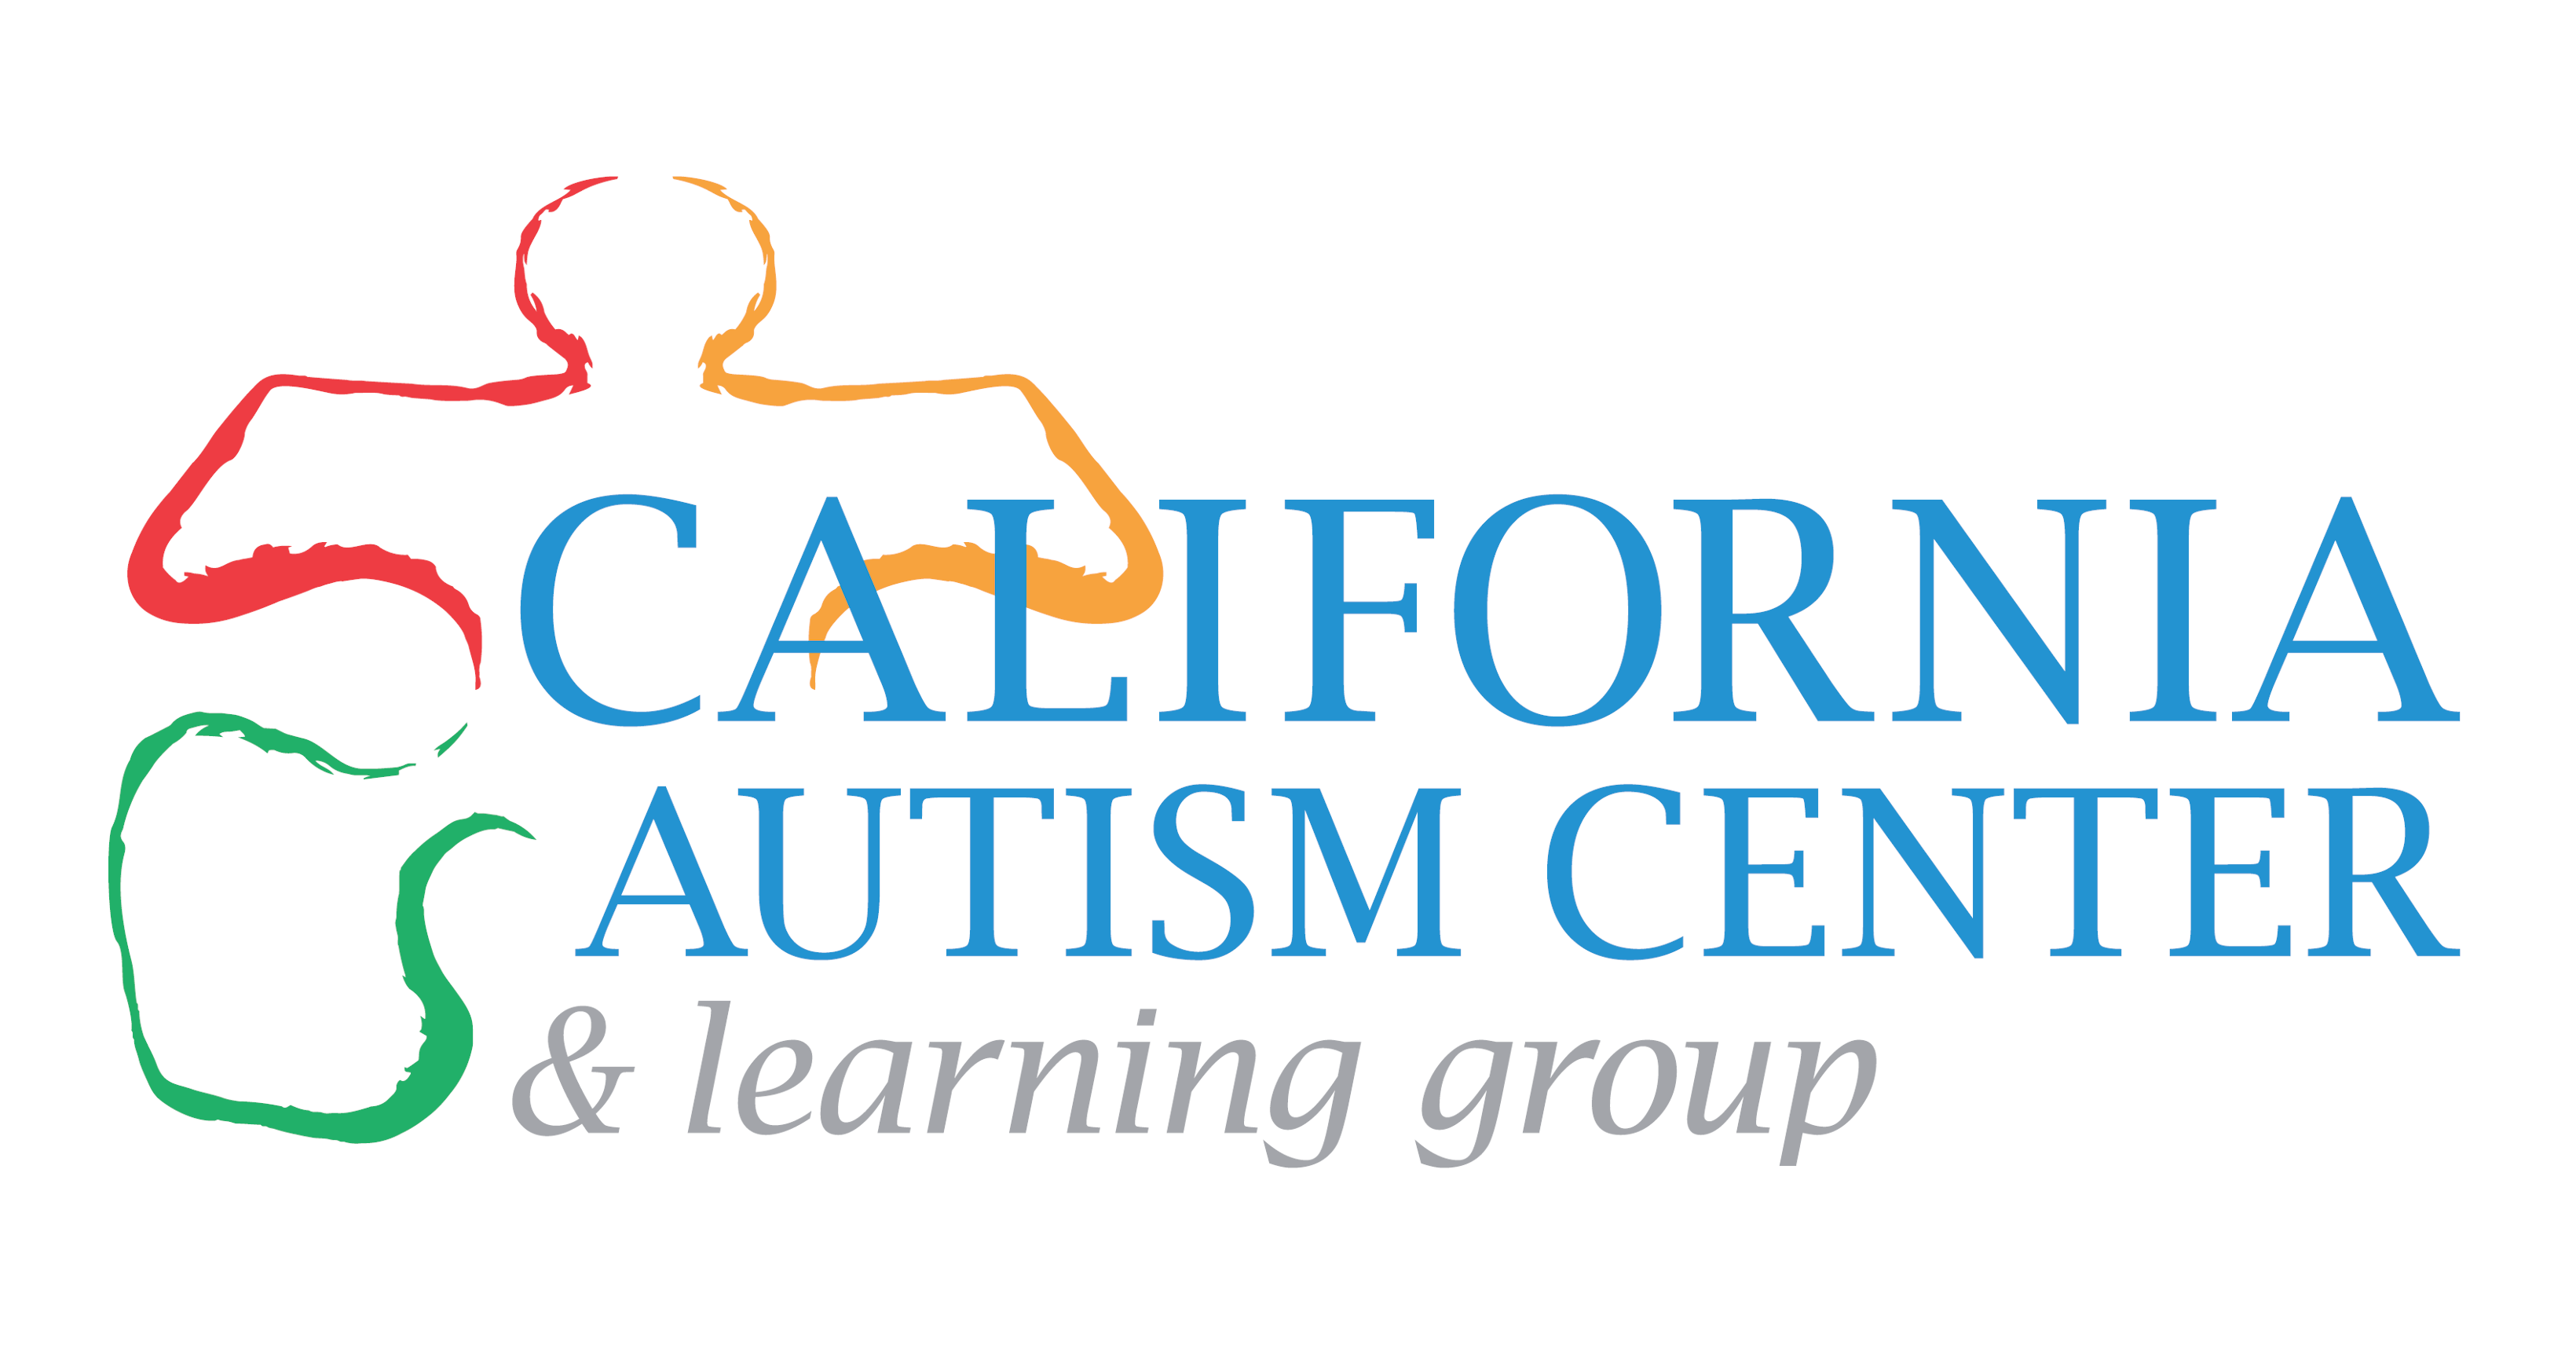 California Autism Center Learning Group